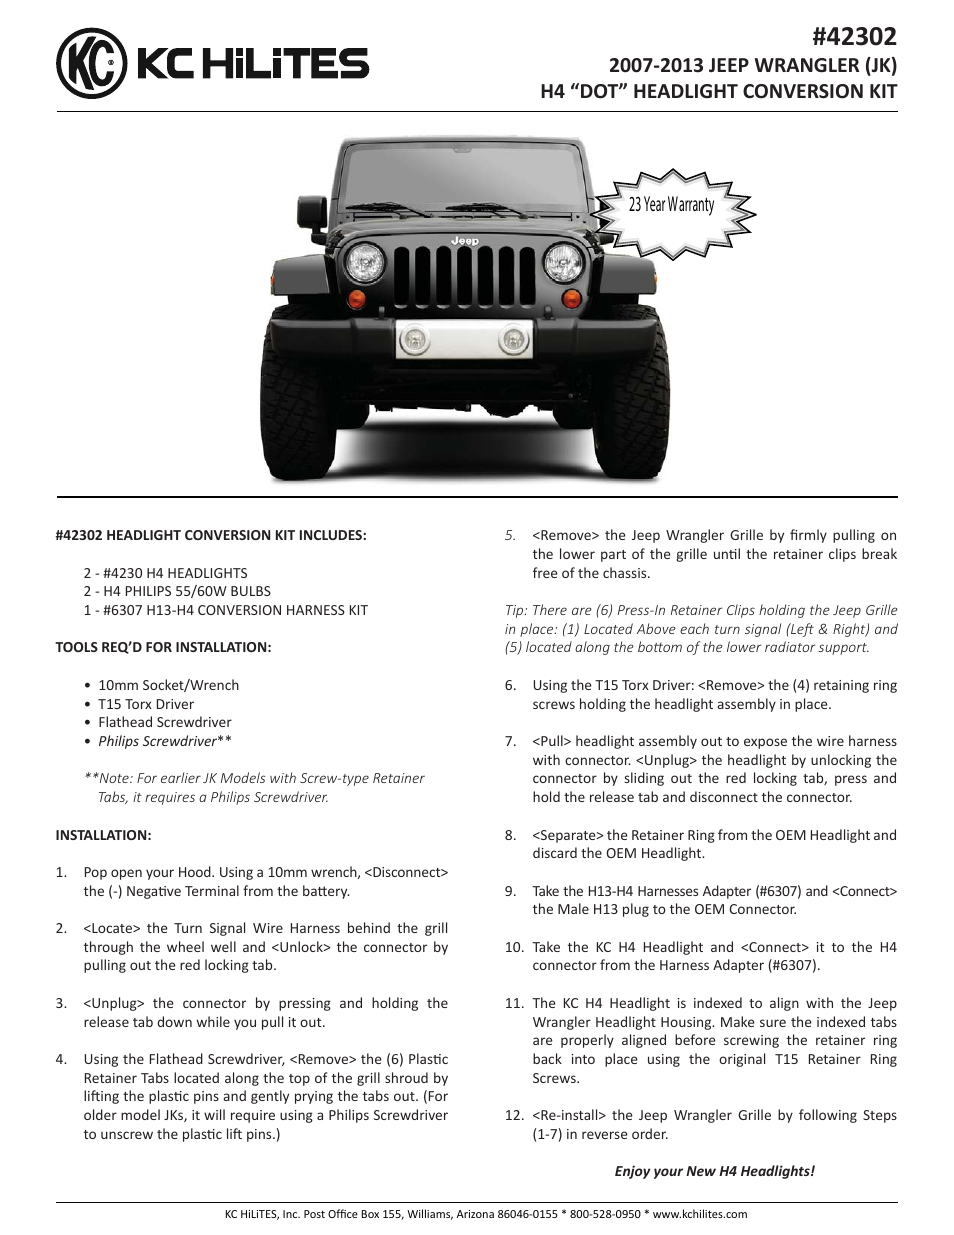 Jeep Tj Wire Harness Retainer Wiring Diagram Libraries Kc Lights Wrangler Librarykc Hilites 42302 2007 2013 Jk